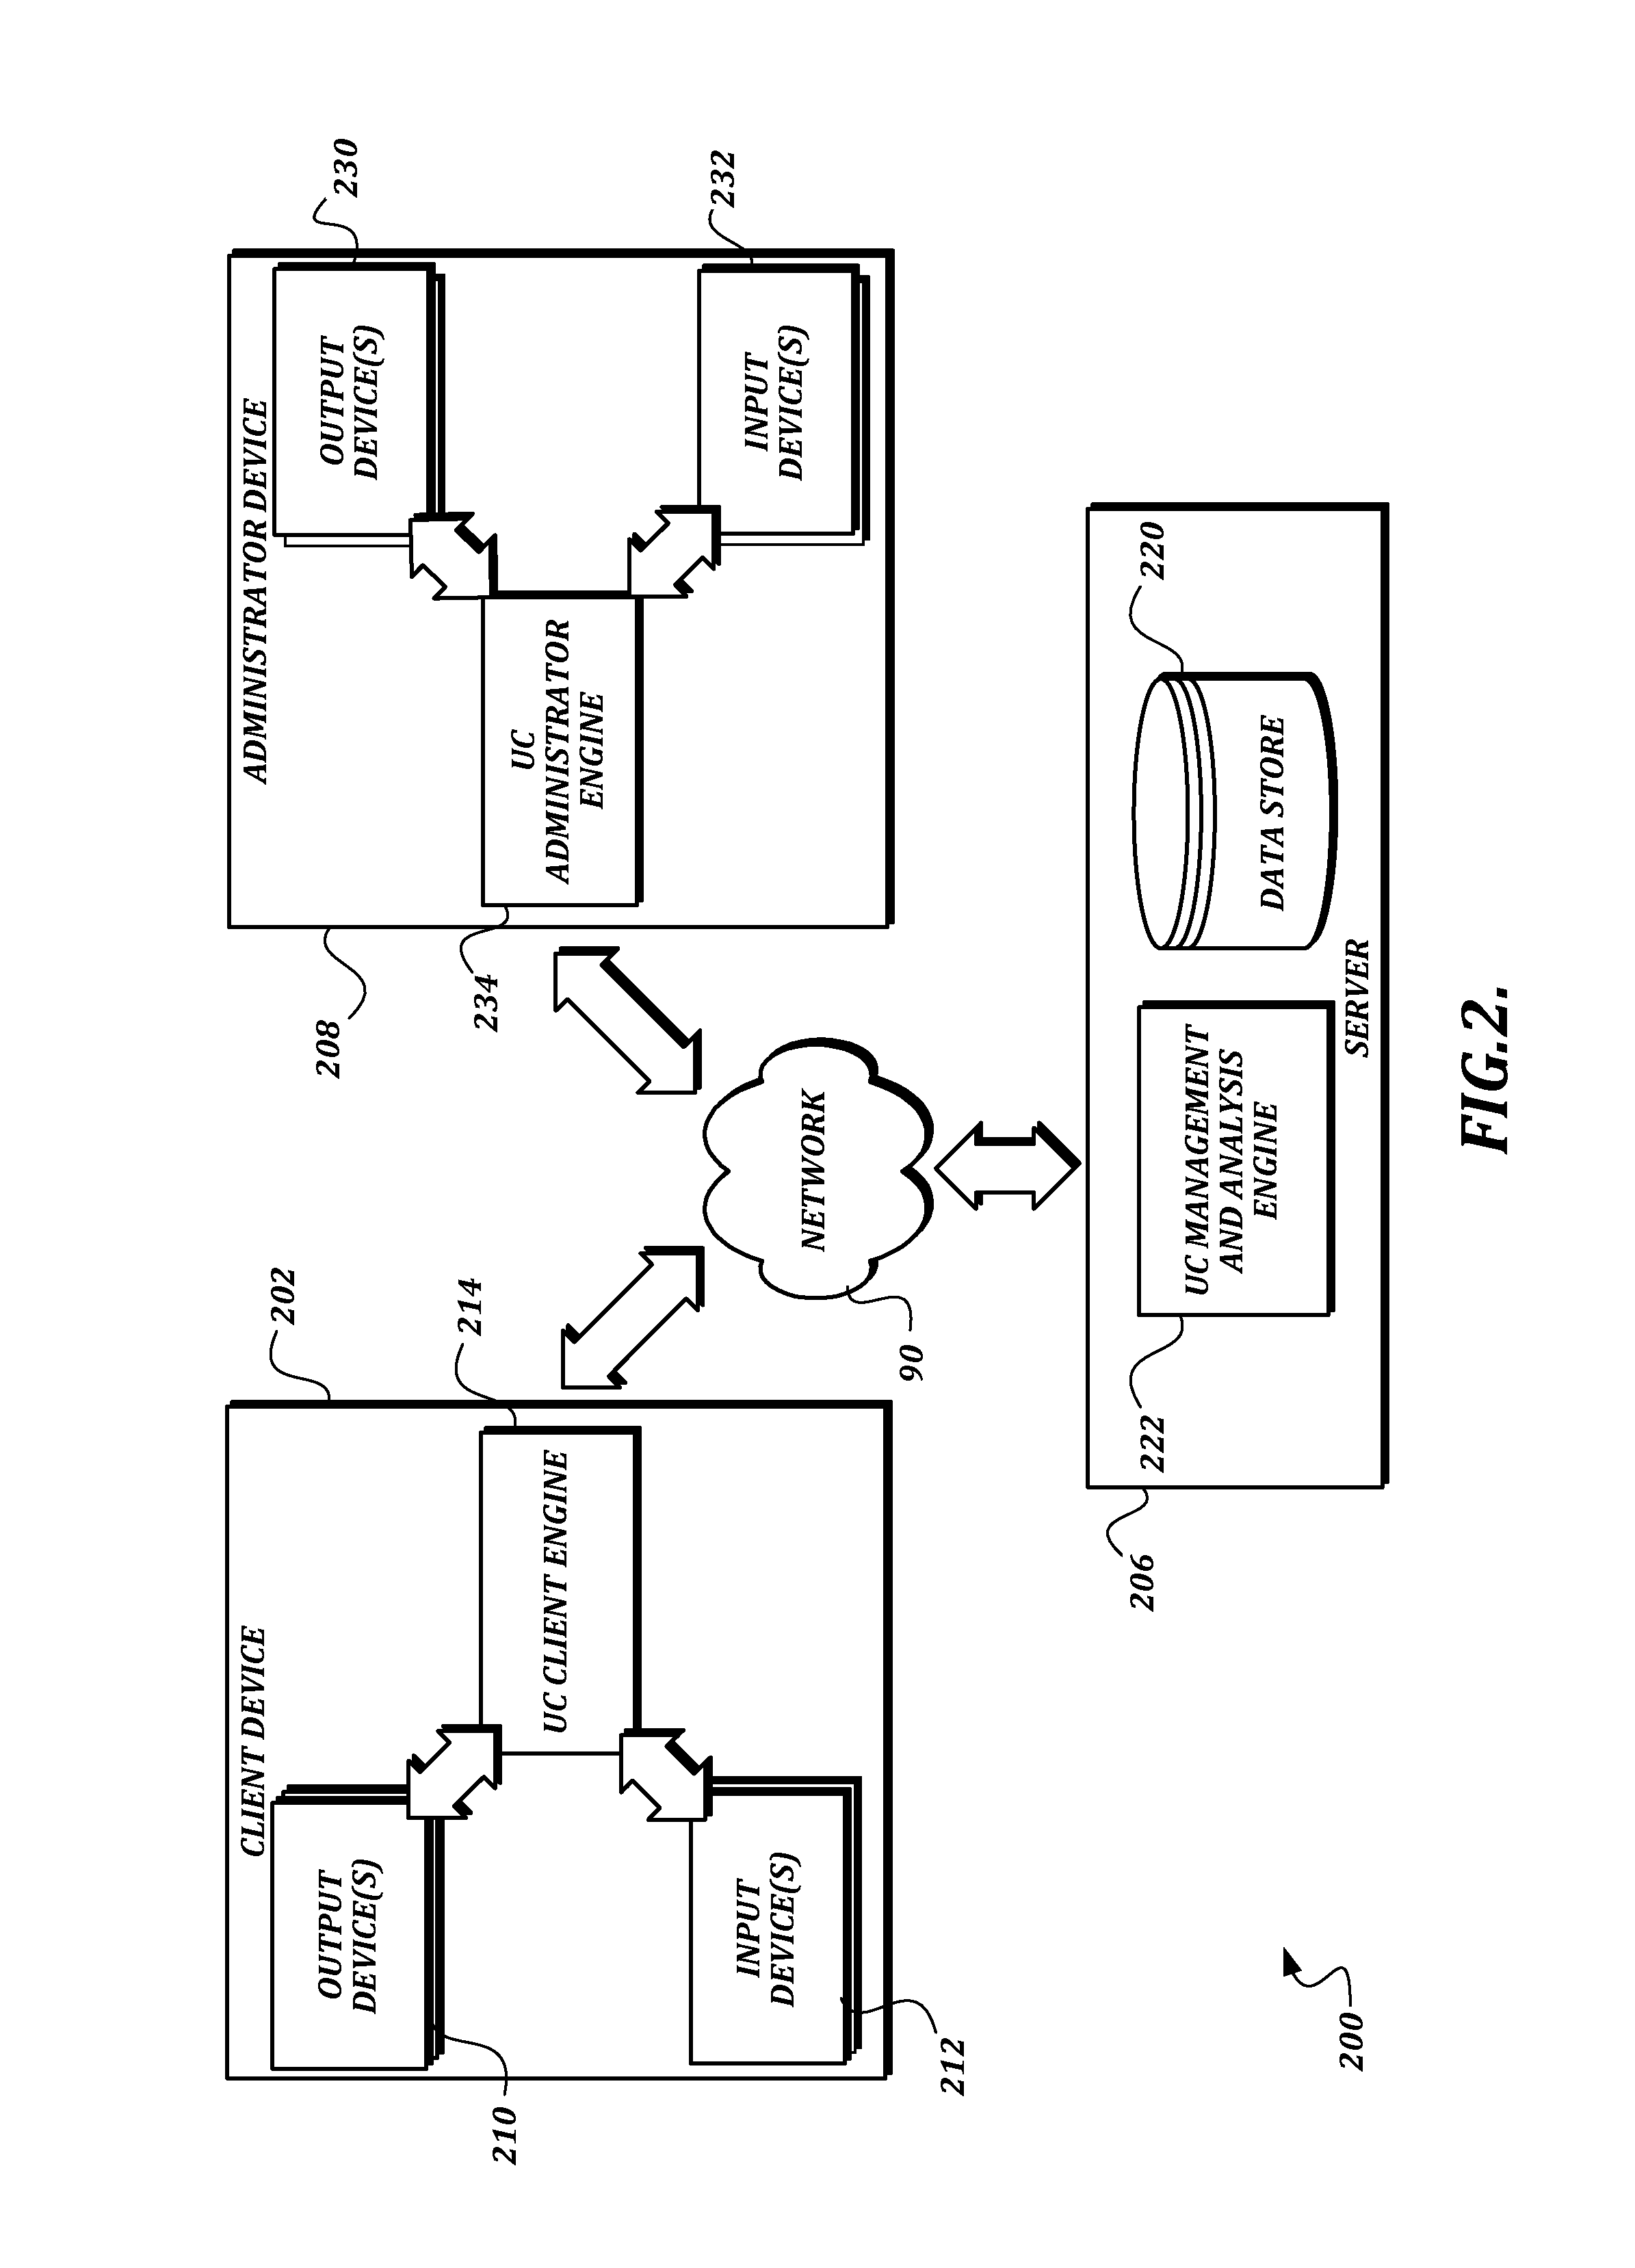 US9503570B2 - Enhanced data capture, analysis, and reporting for